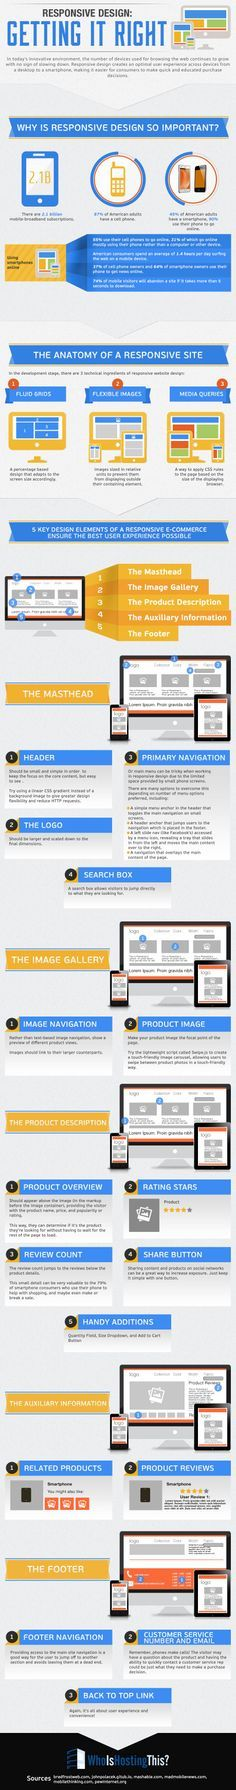 Responsive Web Design - How to Get it Right!